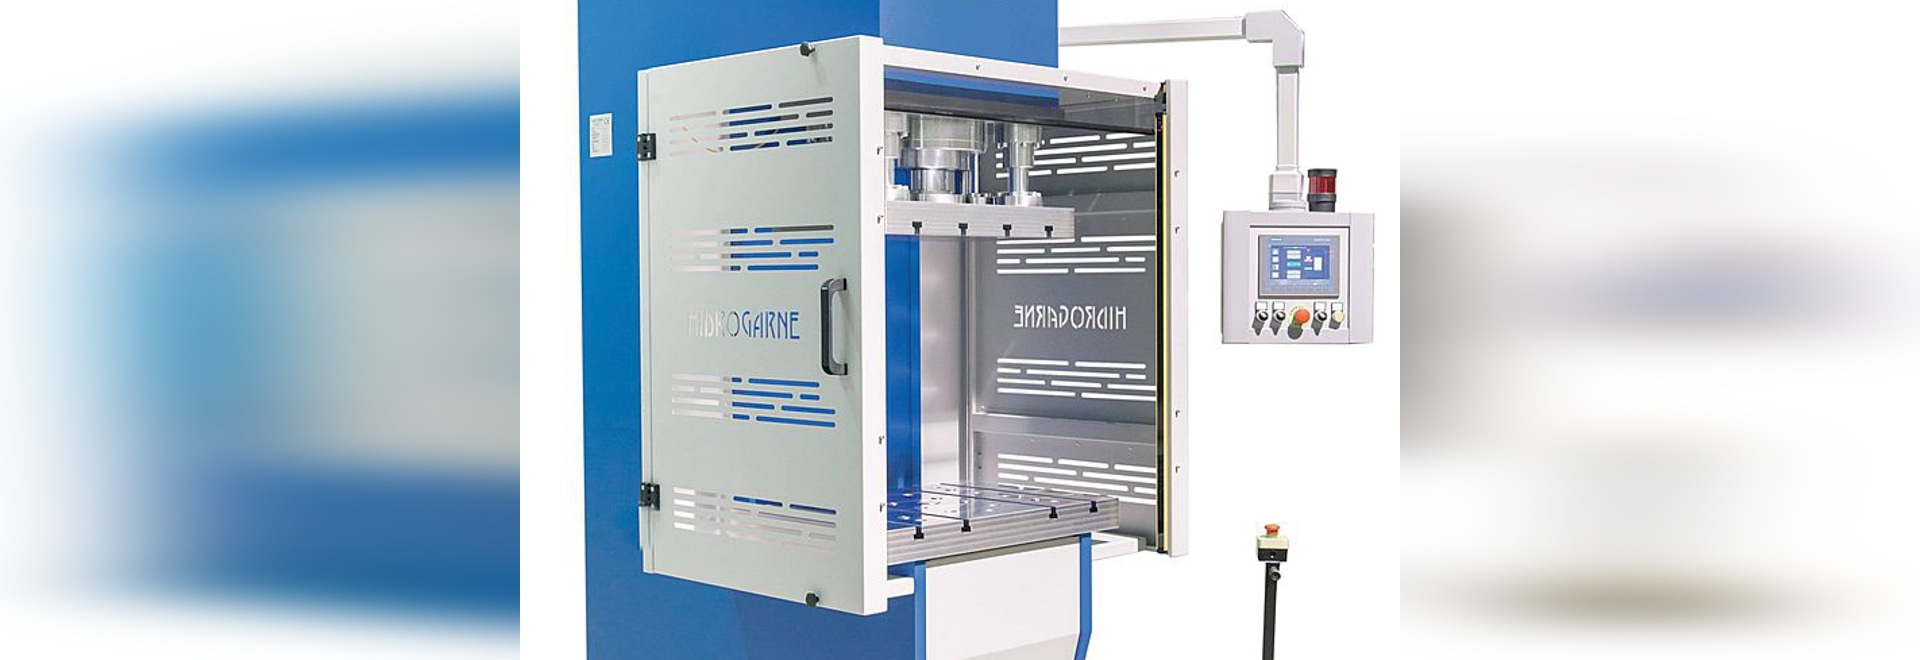 New series of hydraulic presses HIDROGARNE for high production in stamping, die-cutting and deep-drawing